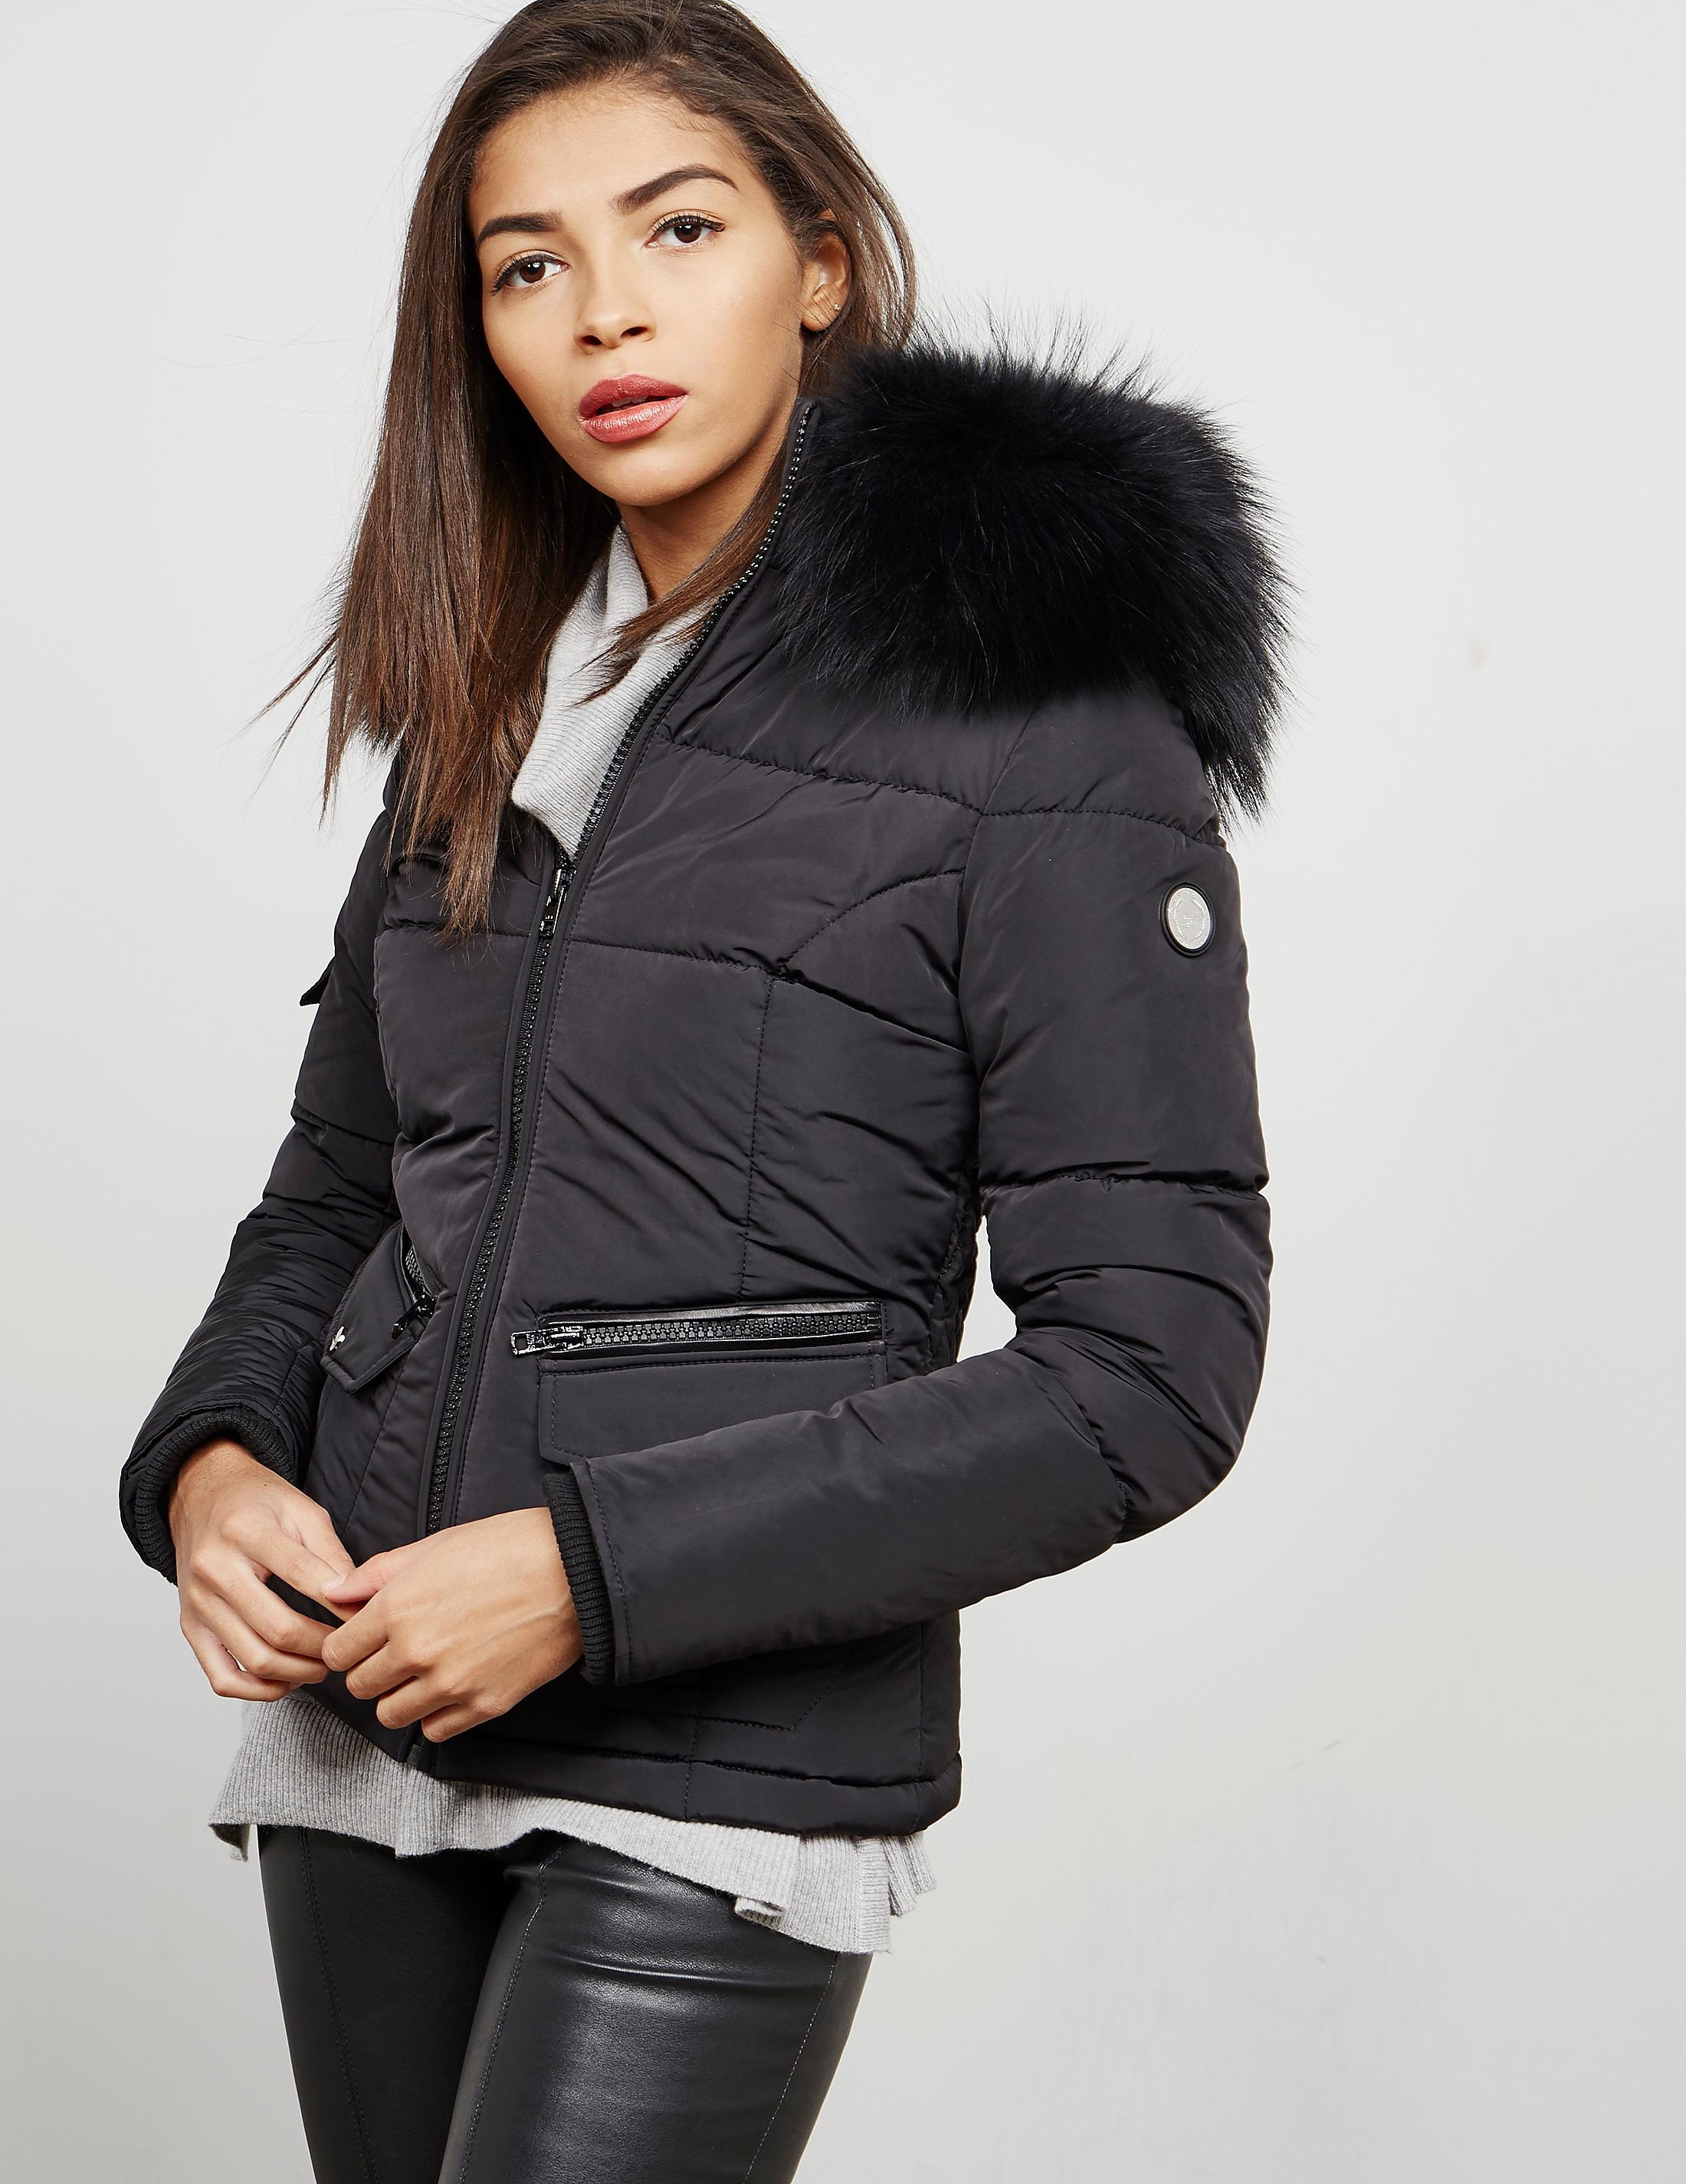 Froccella Big Fur Padded Jacket